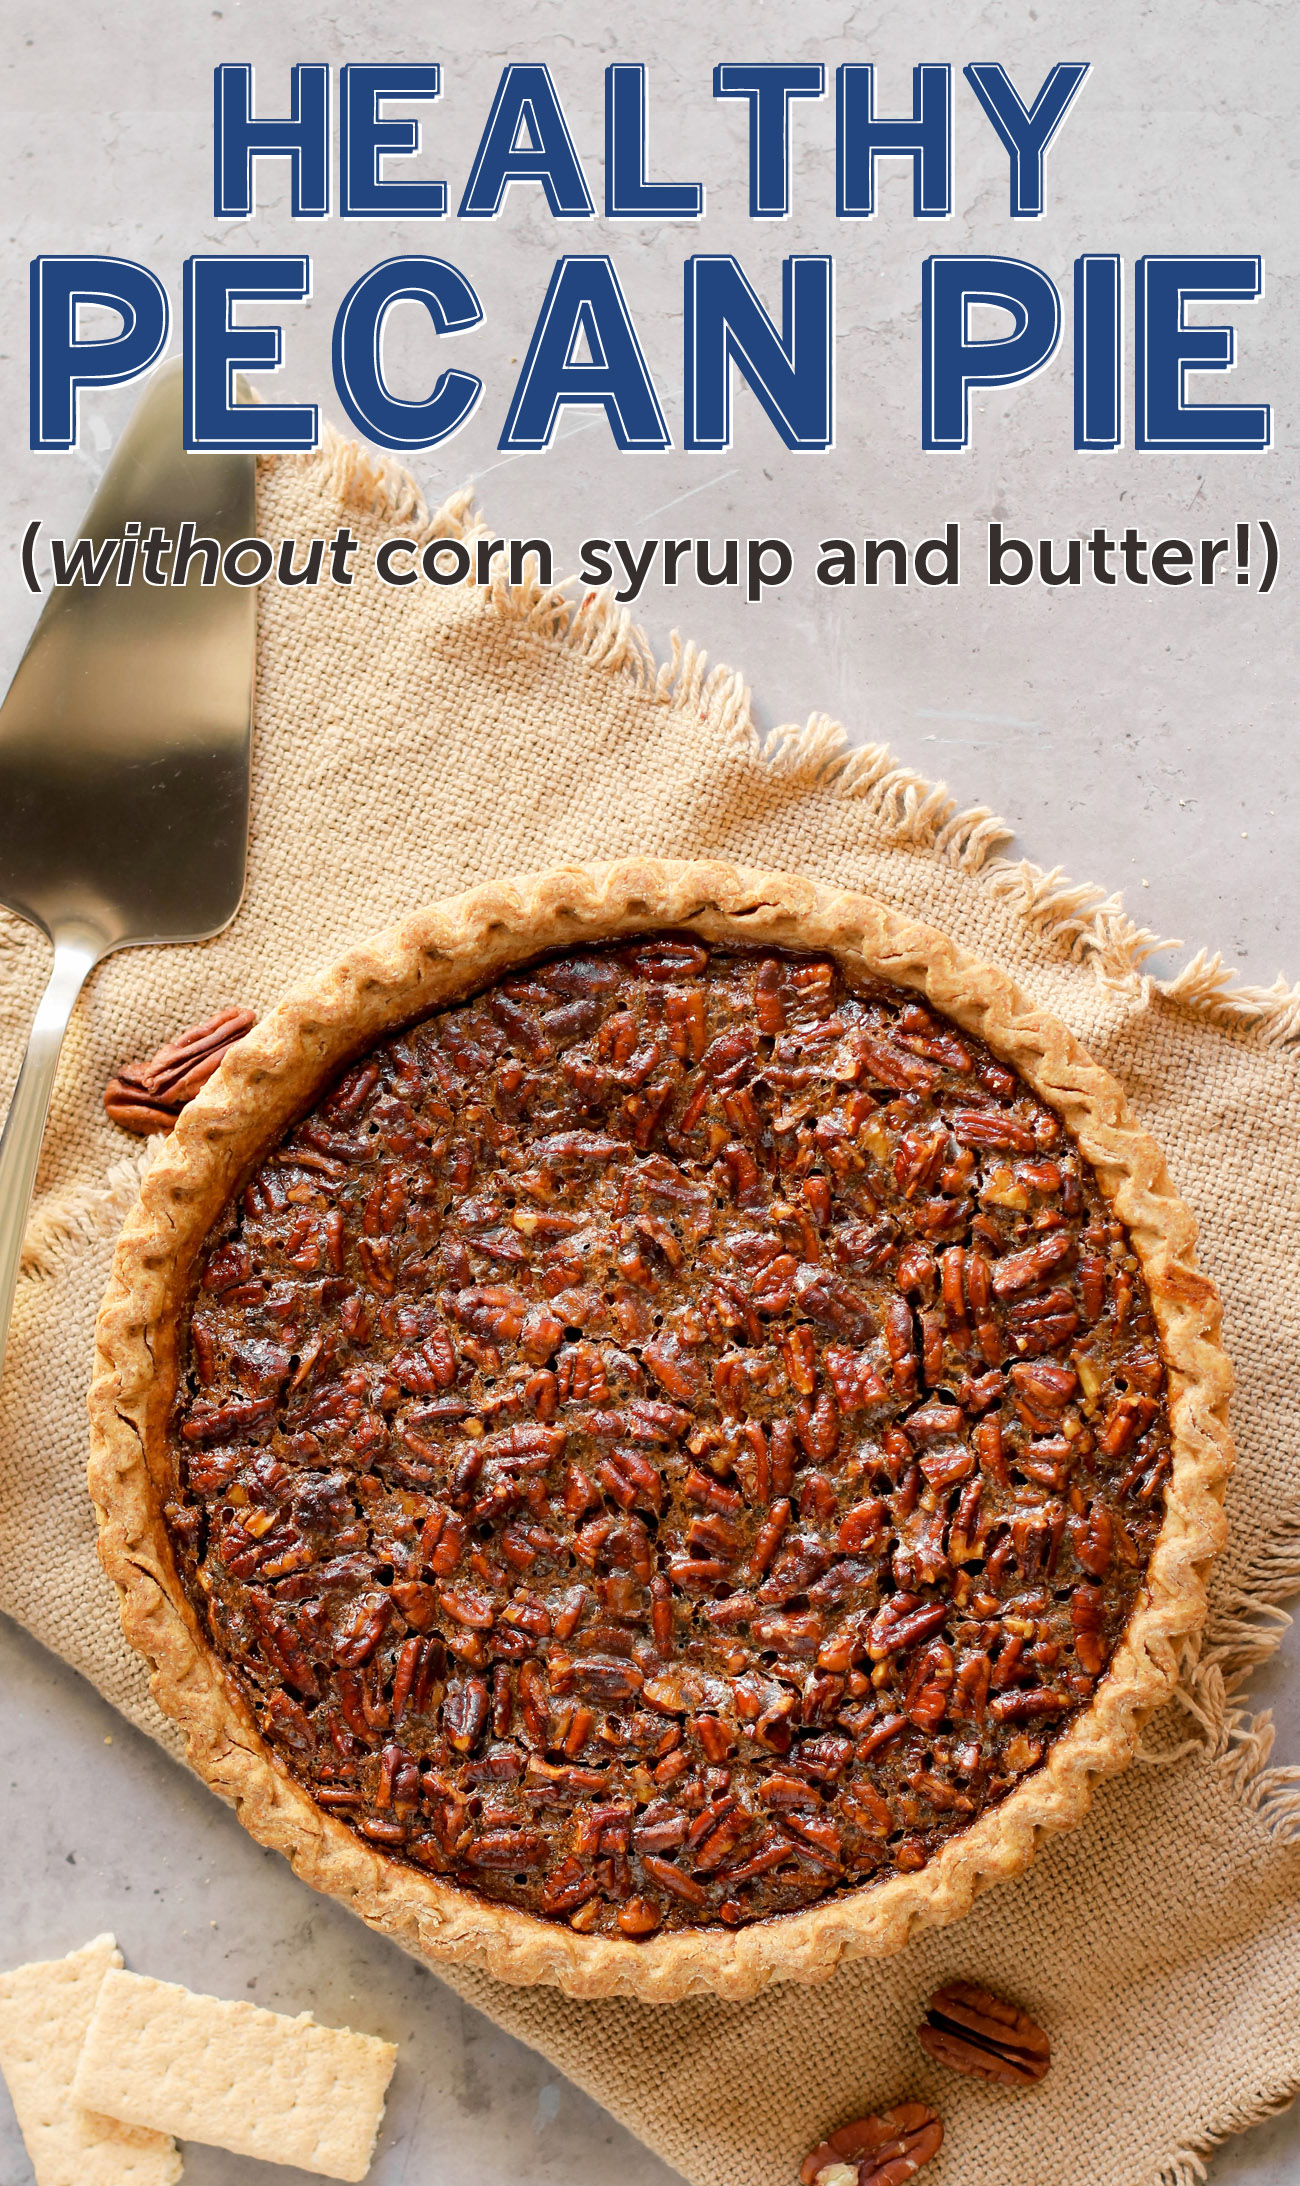 This Healthy Pecan Pie is so rich and decadent, every bite is pure joy -- you'd never know it's made without the corn syrup, white sugar, butter, and heavy cream!This freezer friendly Pecan Pie isan all natural, good-for-you dessert that is perfect for Thanksgiving, Christmas, birthdays, or any dayfor that matter!